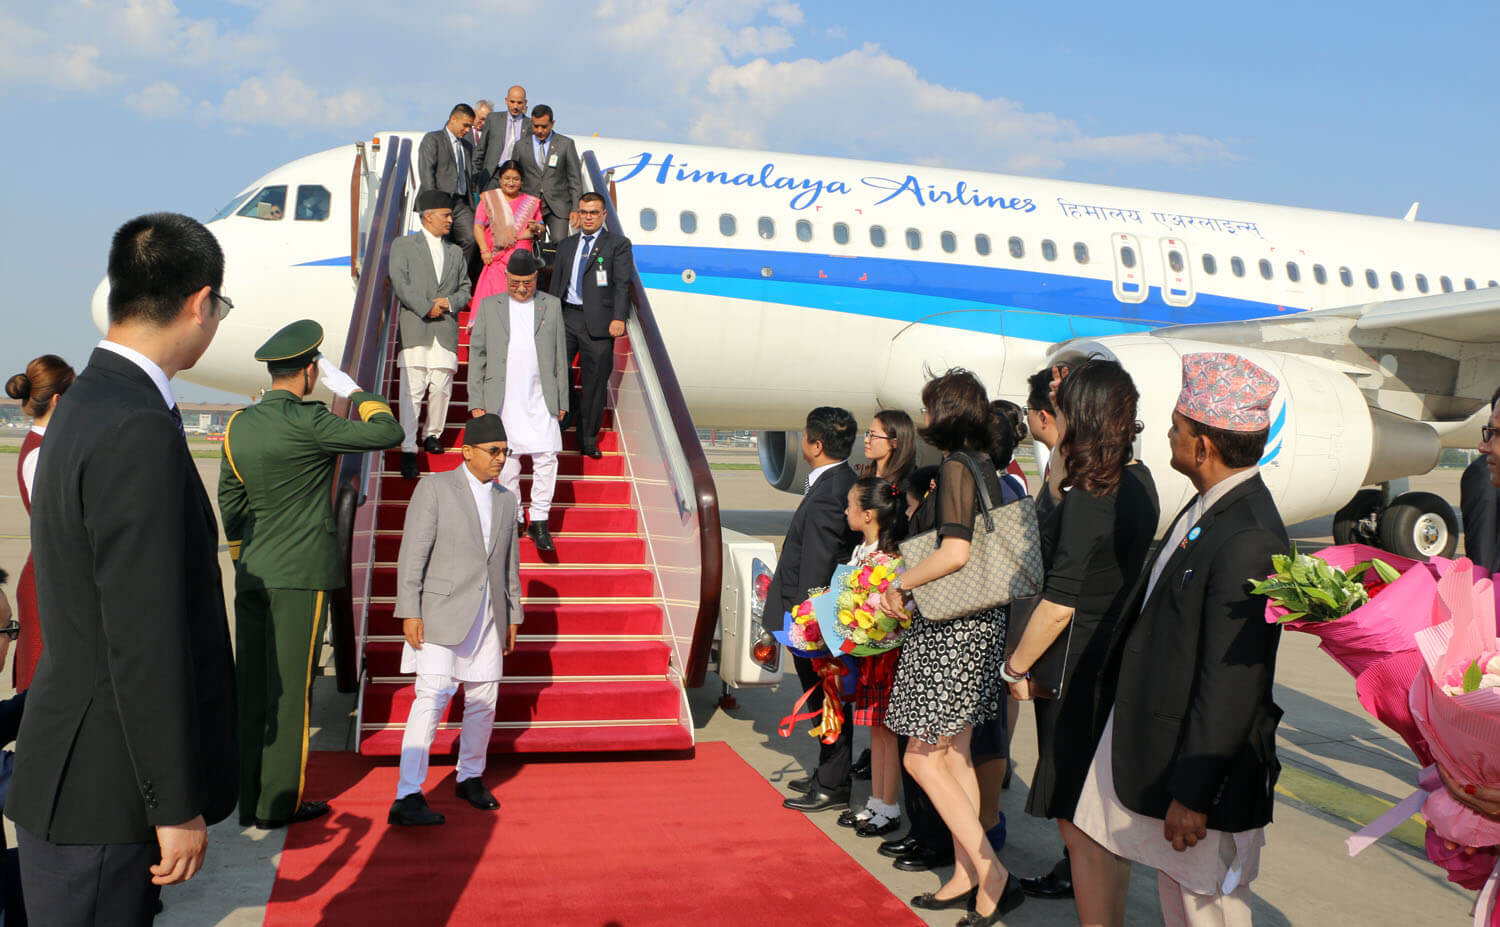 PM KP Oli arrives in Beijing on Tuesday for a six-day state visit to China. Nepal and China are expected to sign agreements on railway, energy, cross-border transmission lines and connectivity during Oli's visit.